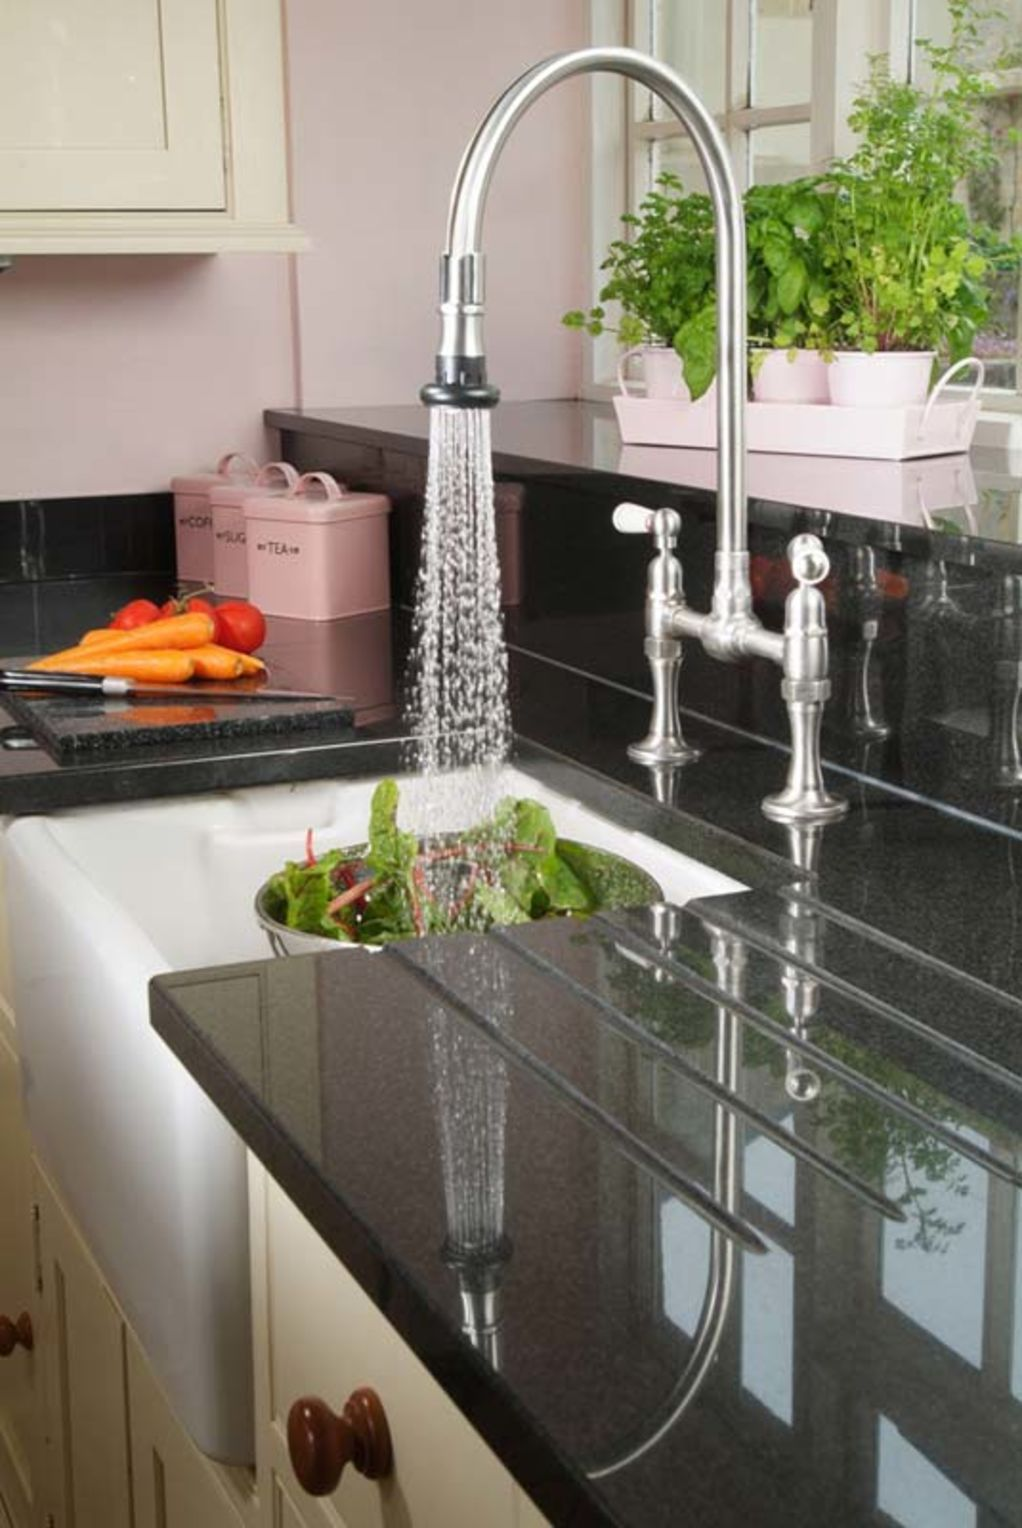 PullDown Faucets for the Period Kitchen Kitchen sink